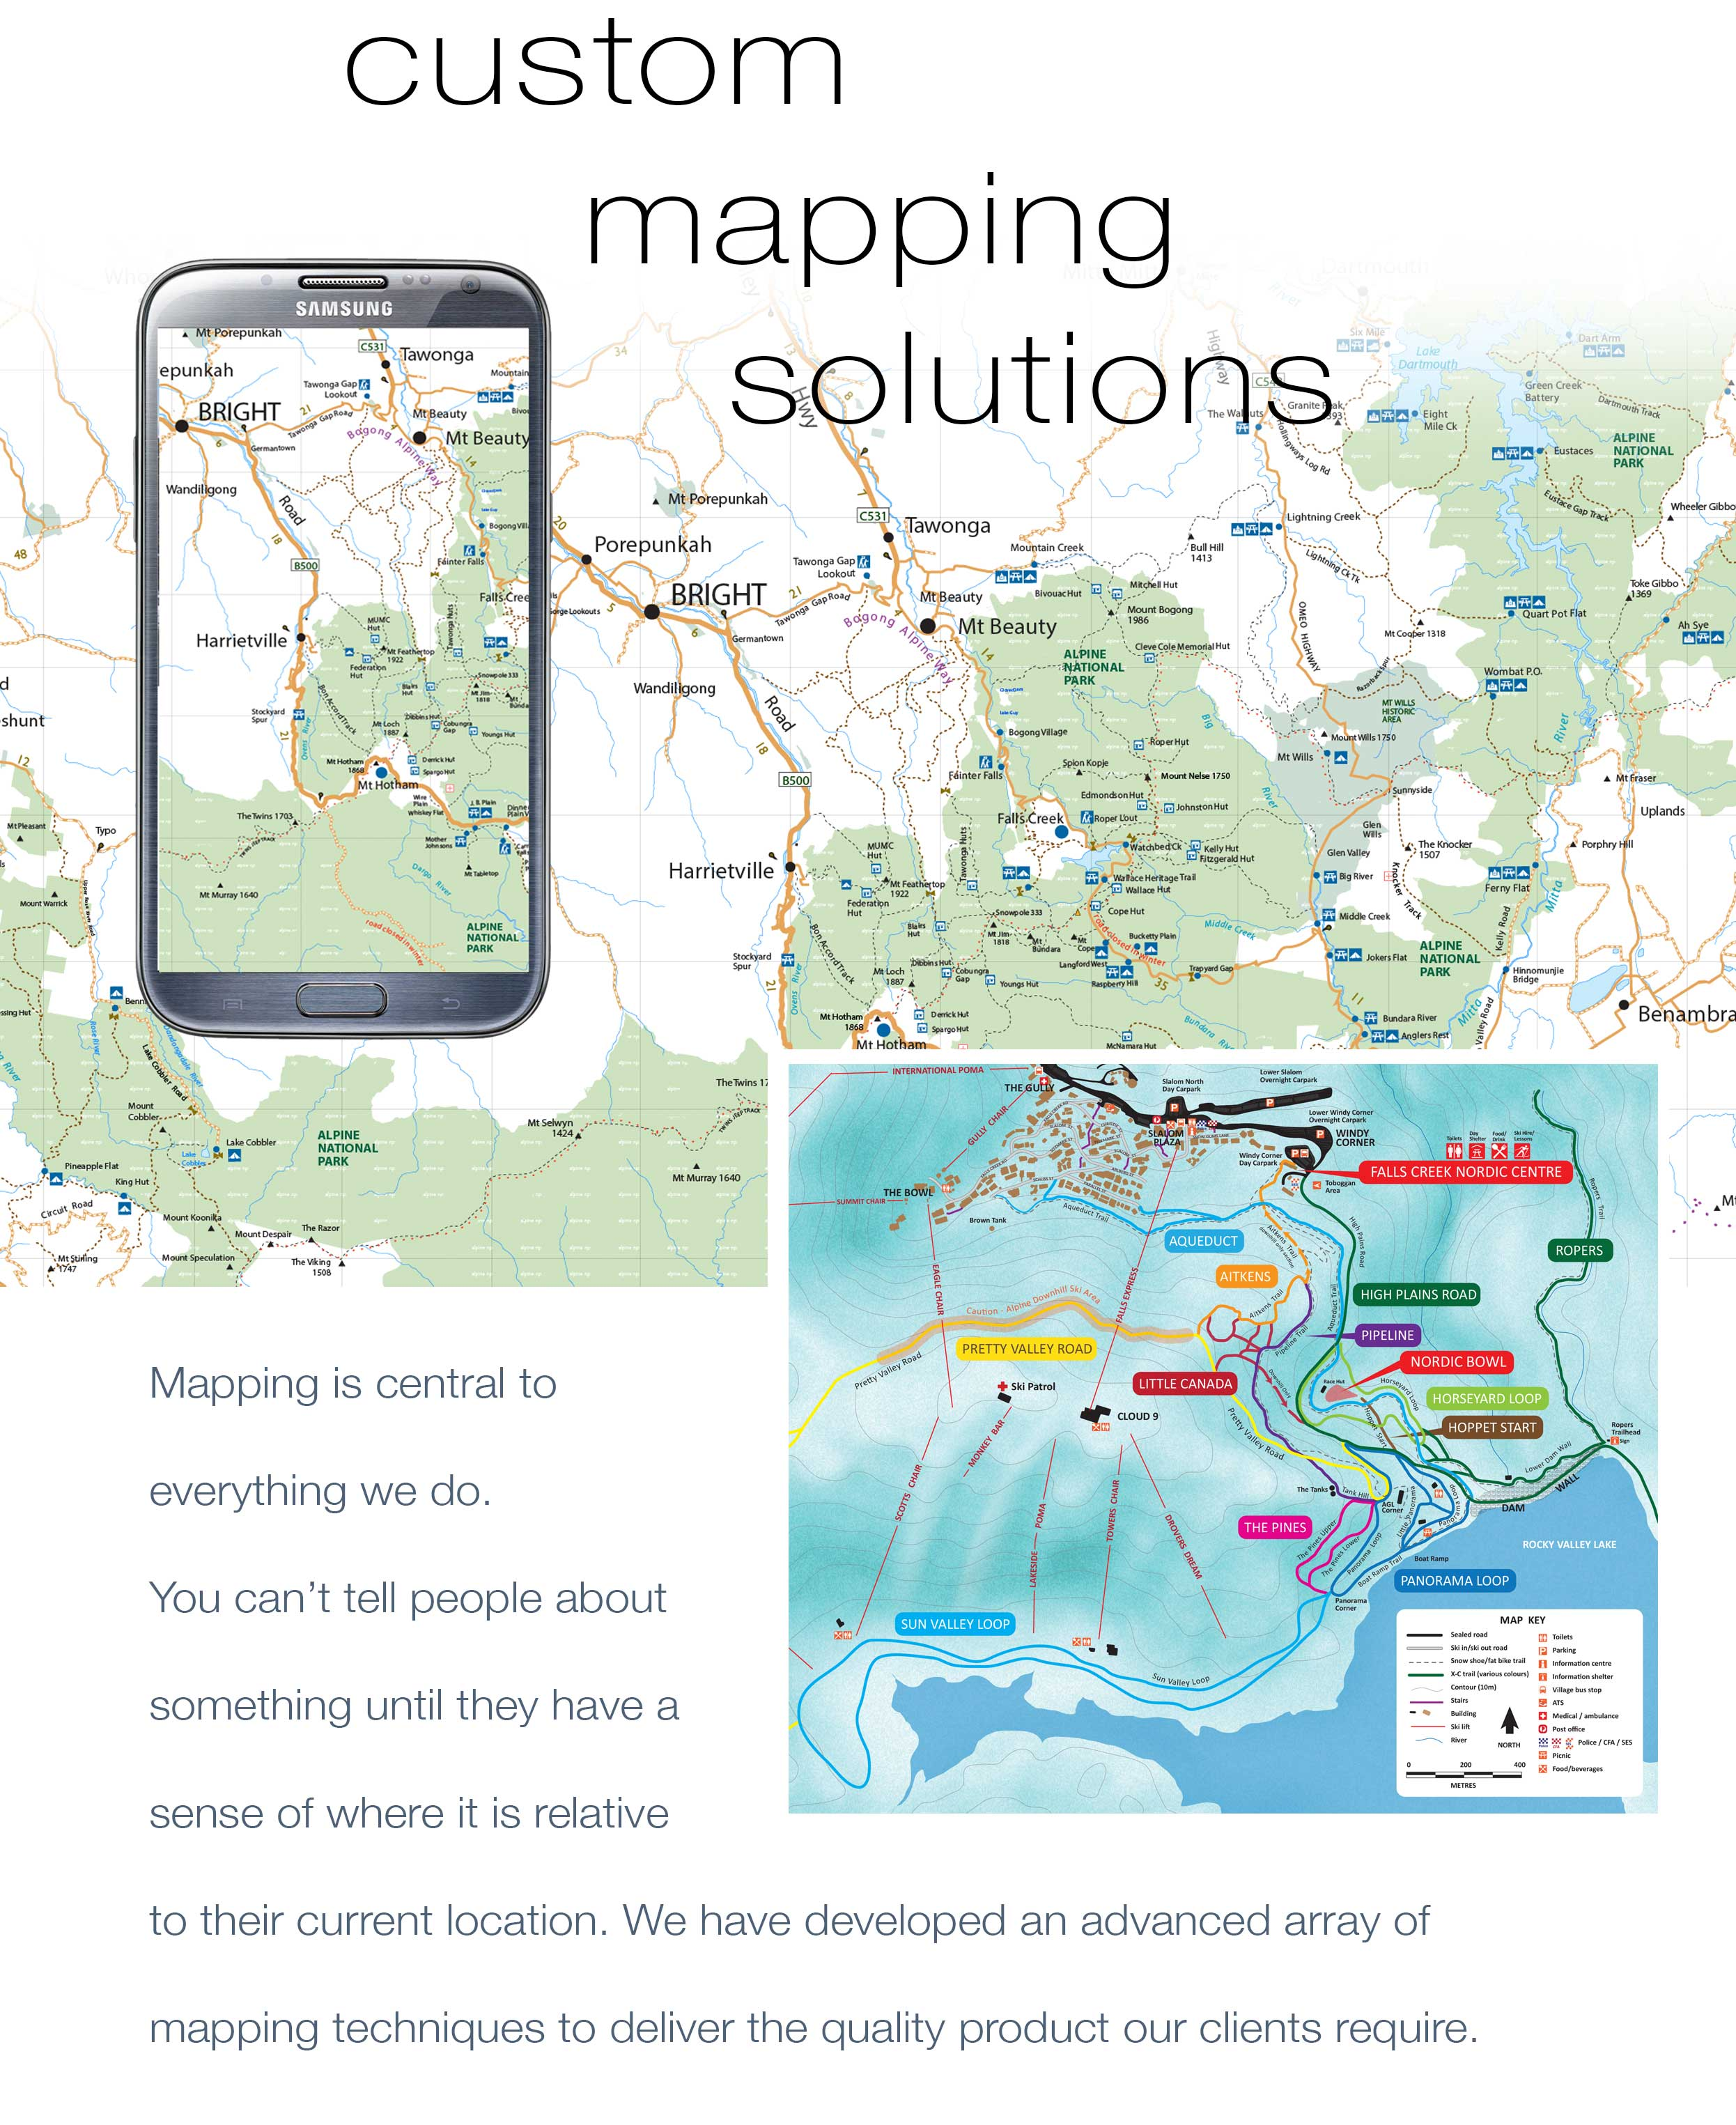 Custom Mapping Solutions. Mapping is central to everything we do.  You can't tell people about something until they have a  sense of where it is relative to their current location.  We have developed an advanced array of mapping skills and  techniques to deliver the quality product our clients require.